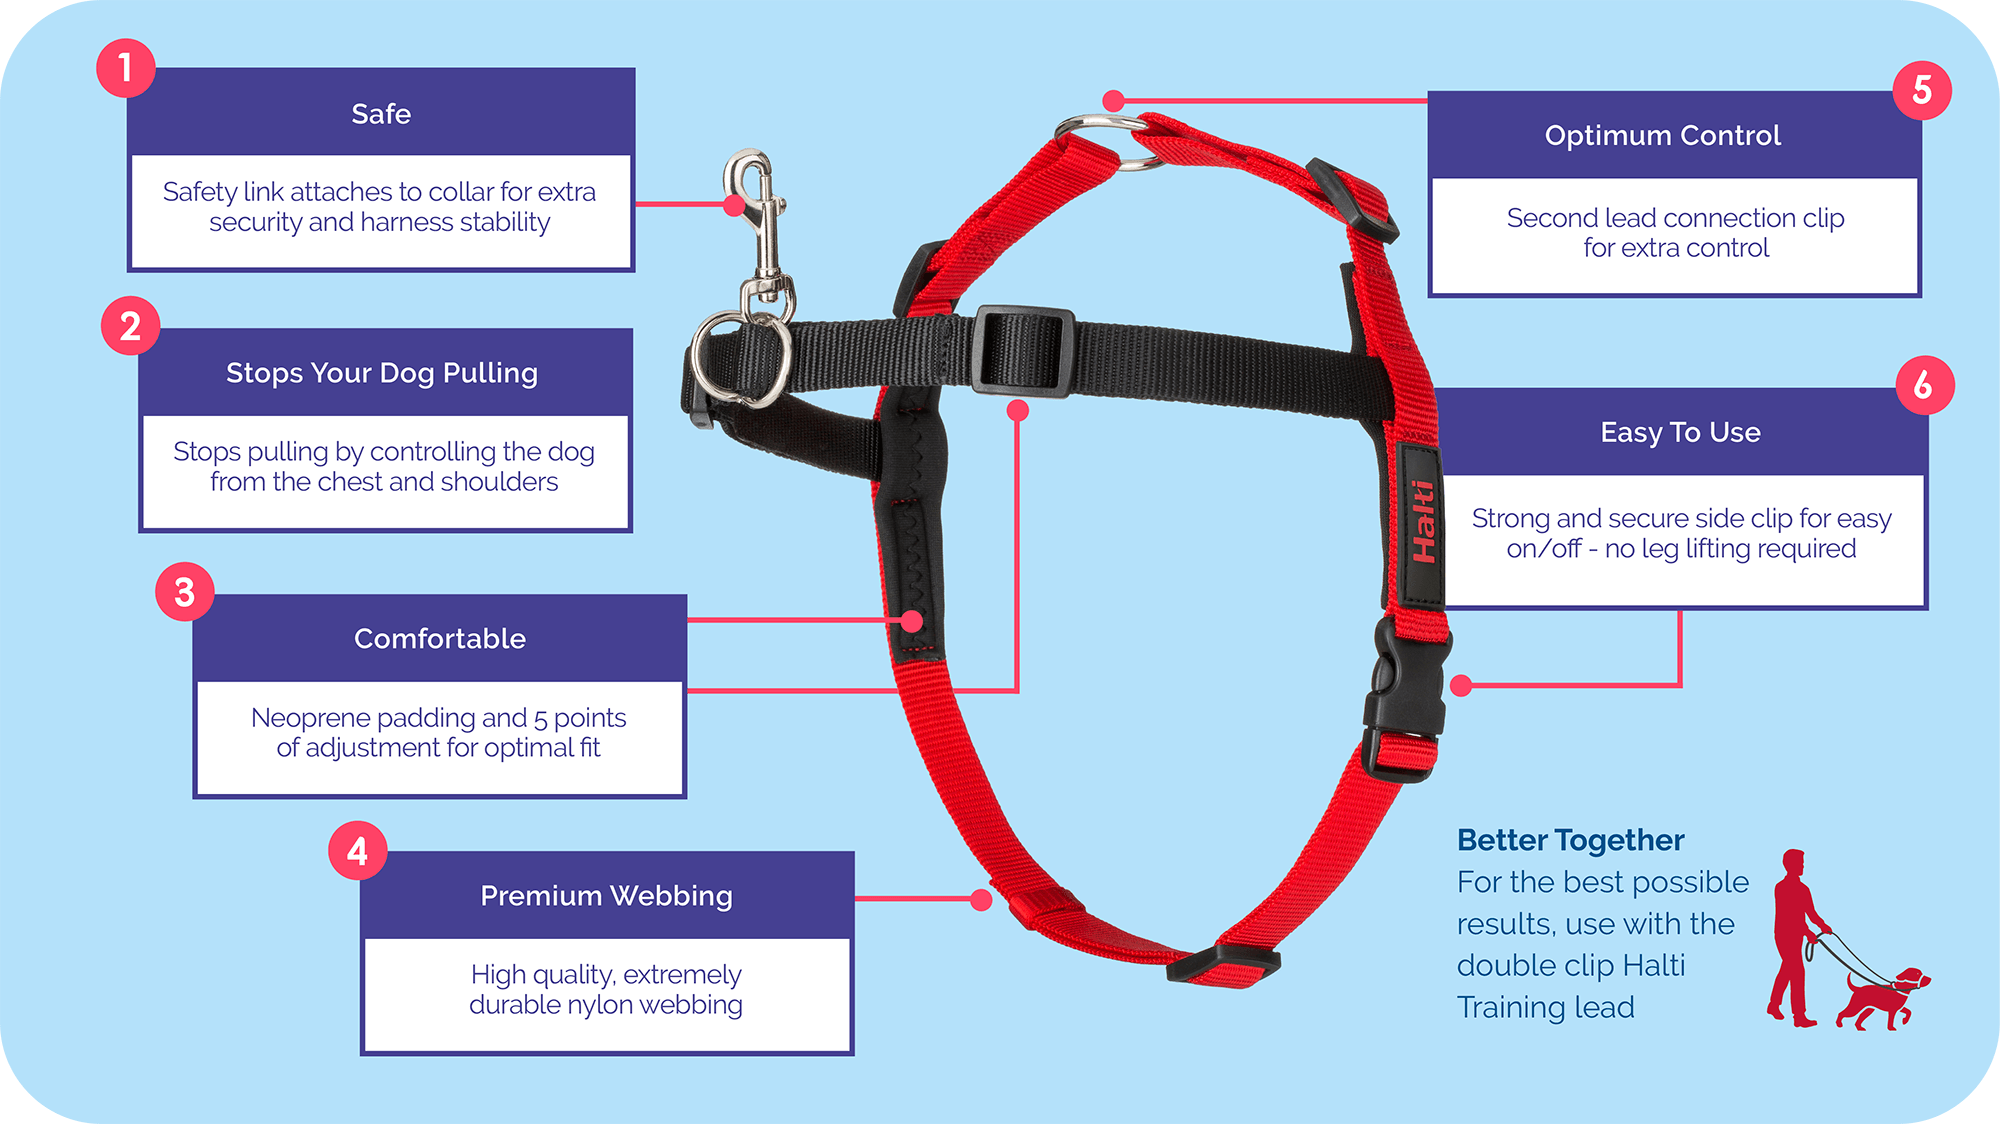 Features guide for the Halti Front Control Harness